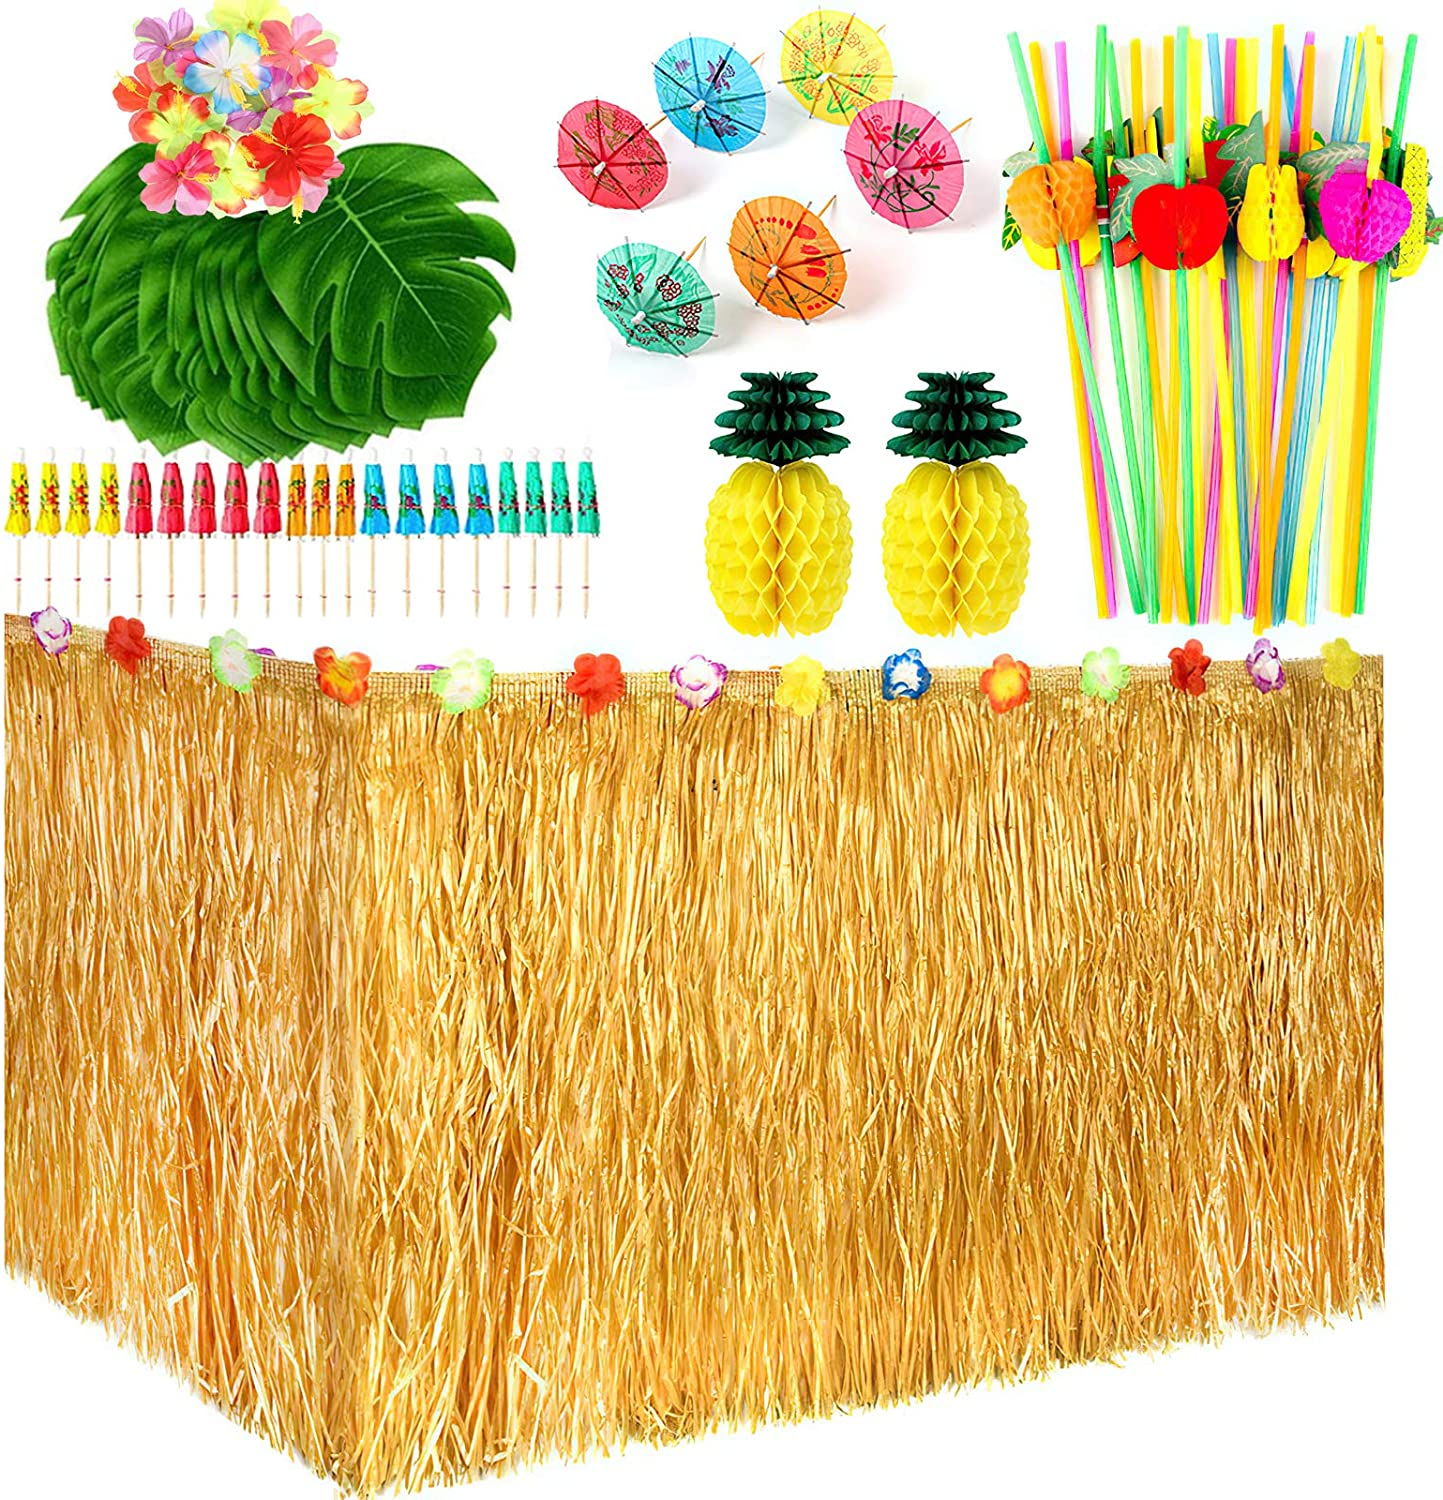 Hawaiian Tropical Party Decoration Set with 9feet Hawaiian Luau Grass Table Skirt, Hibiscus Flowers, Palm Leaves, Paper Pineapple, Umbrella Food Toppers and 3D Fruit Straws Luau Party Supplies